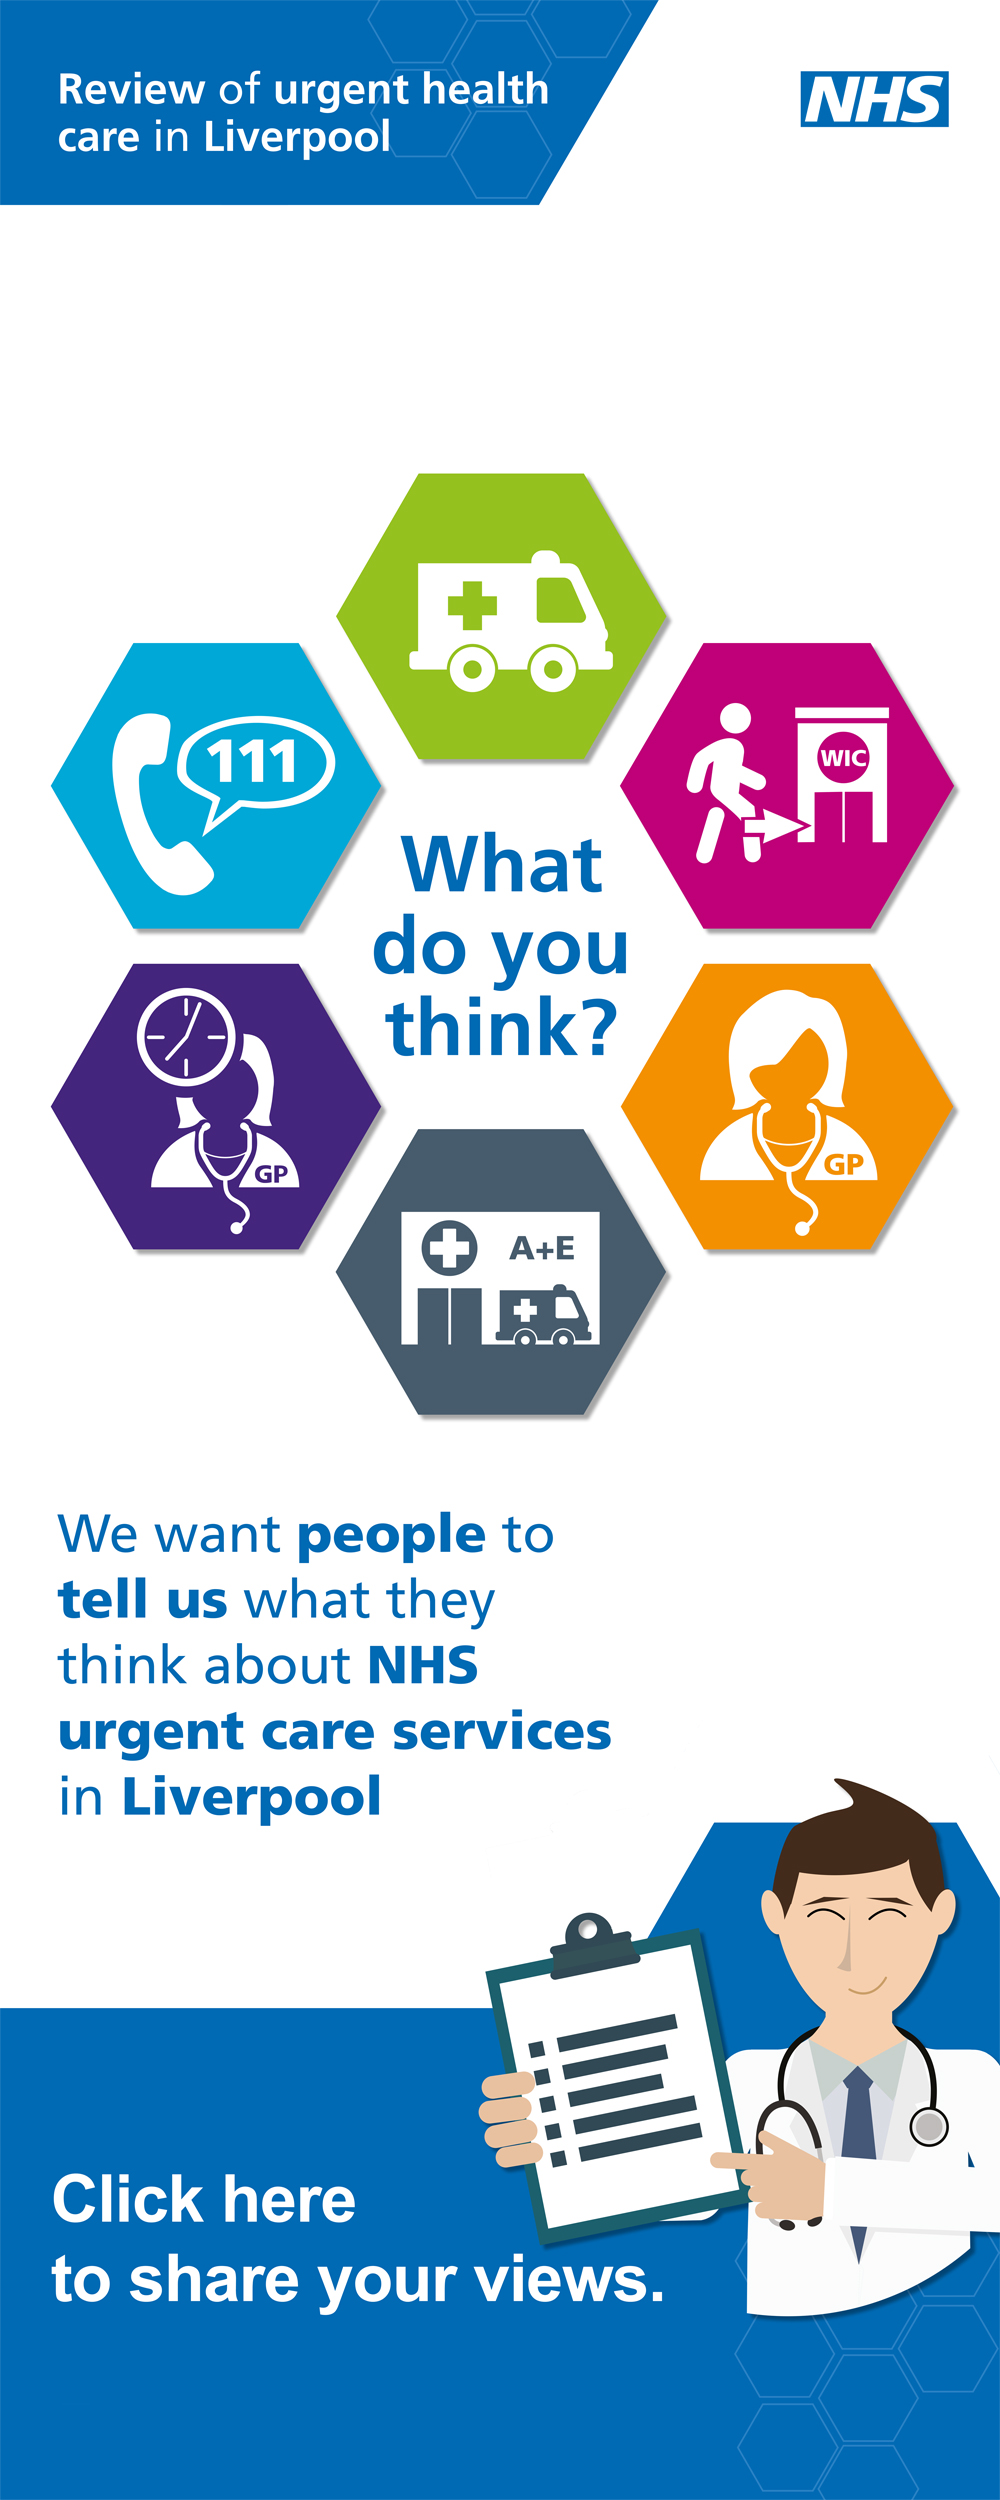 Click here to share your views on NHS Liverpool urgent and same day care services